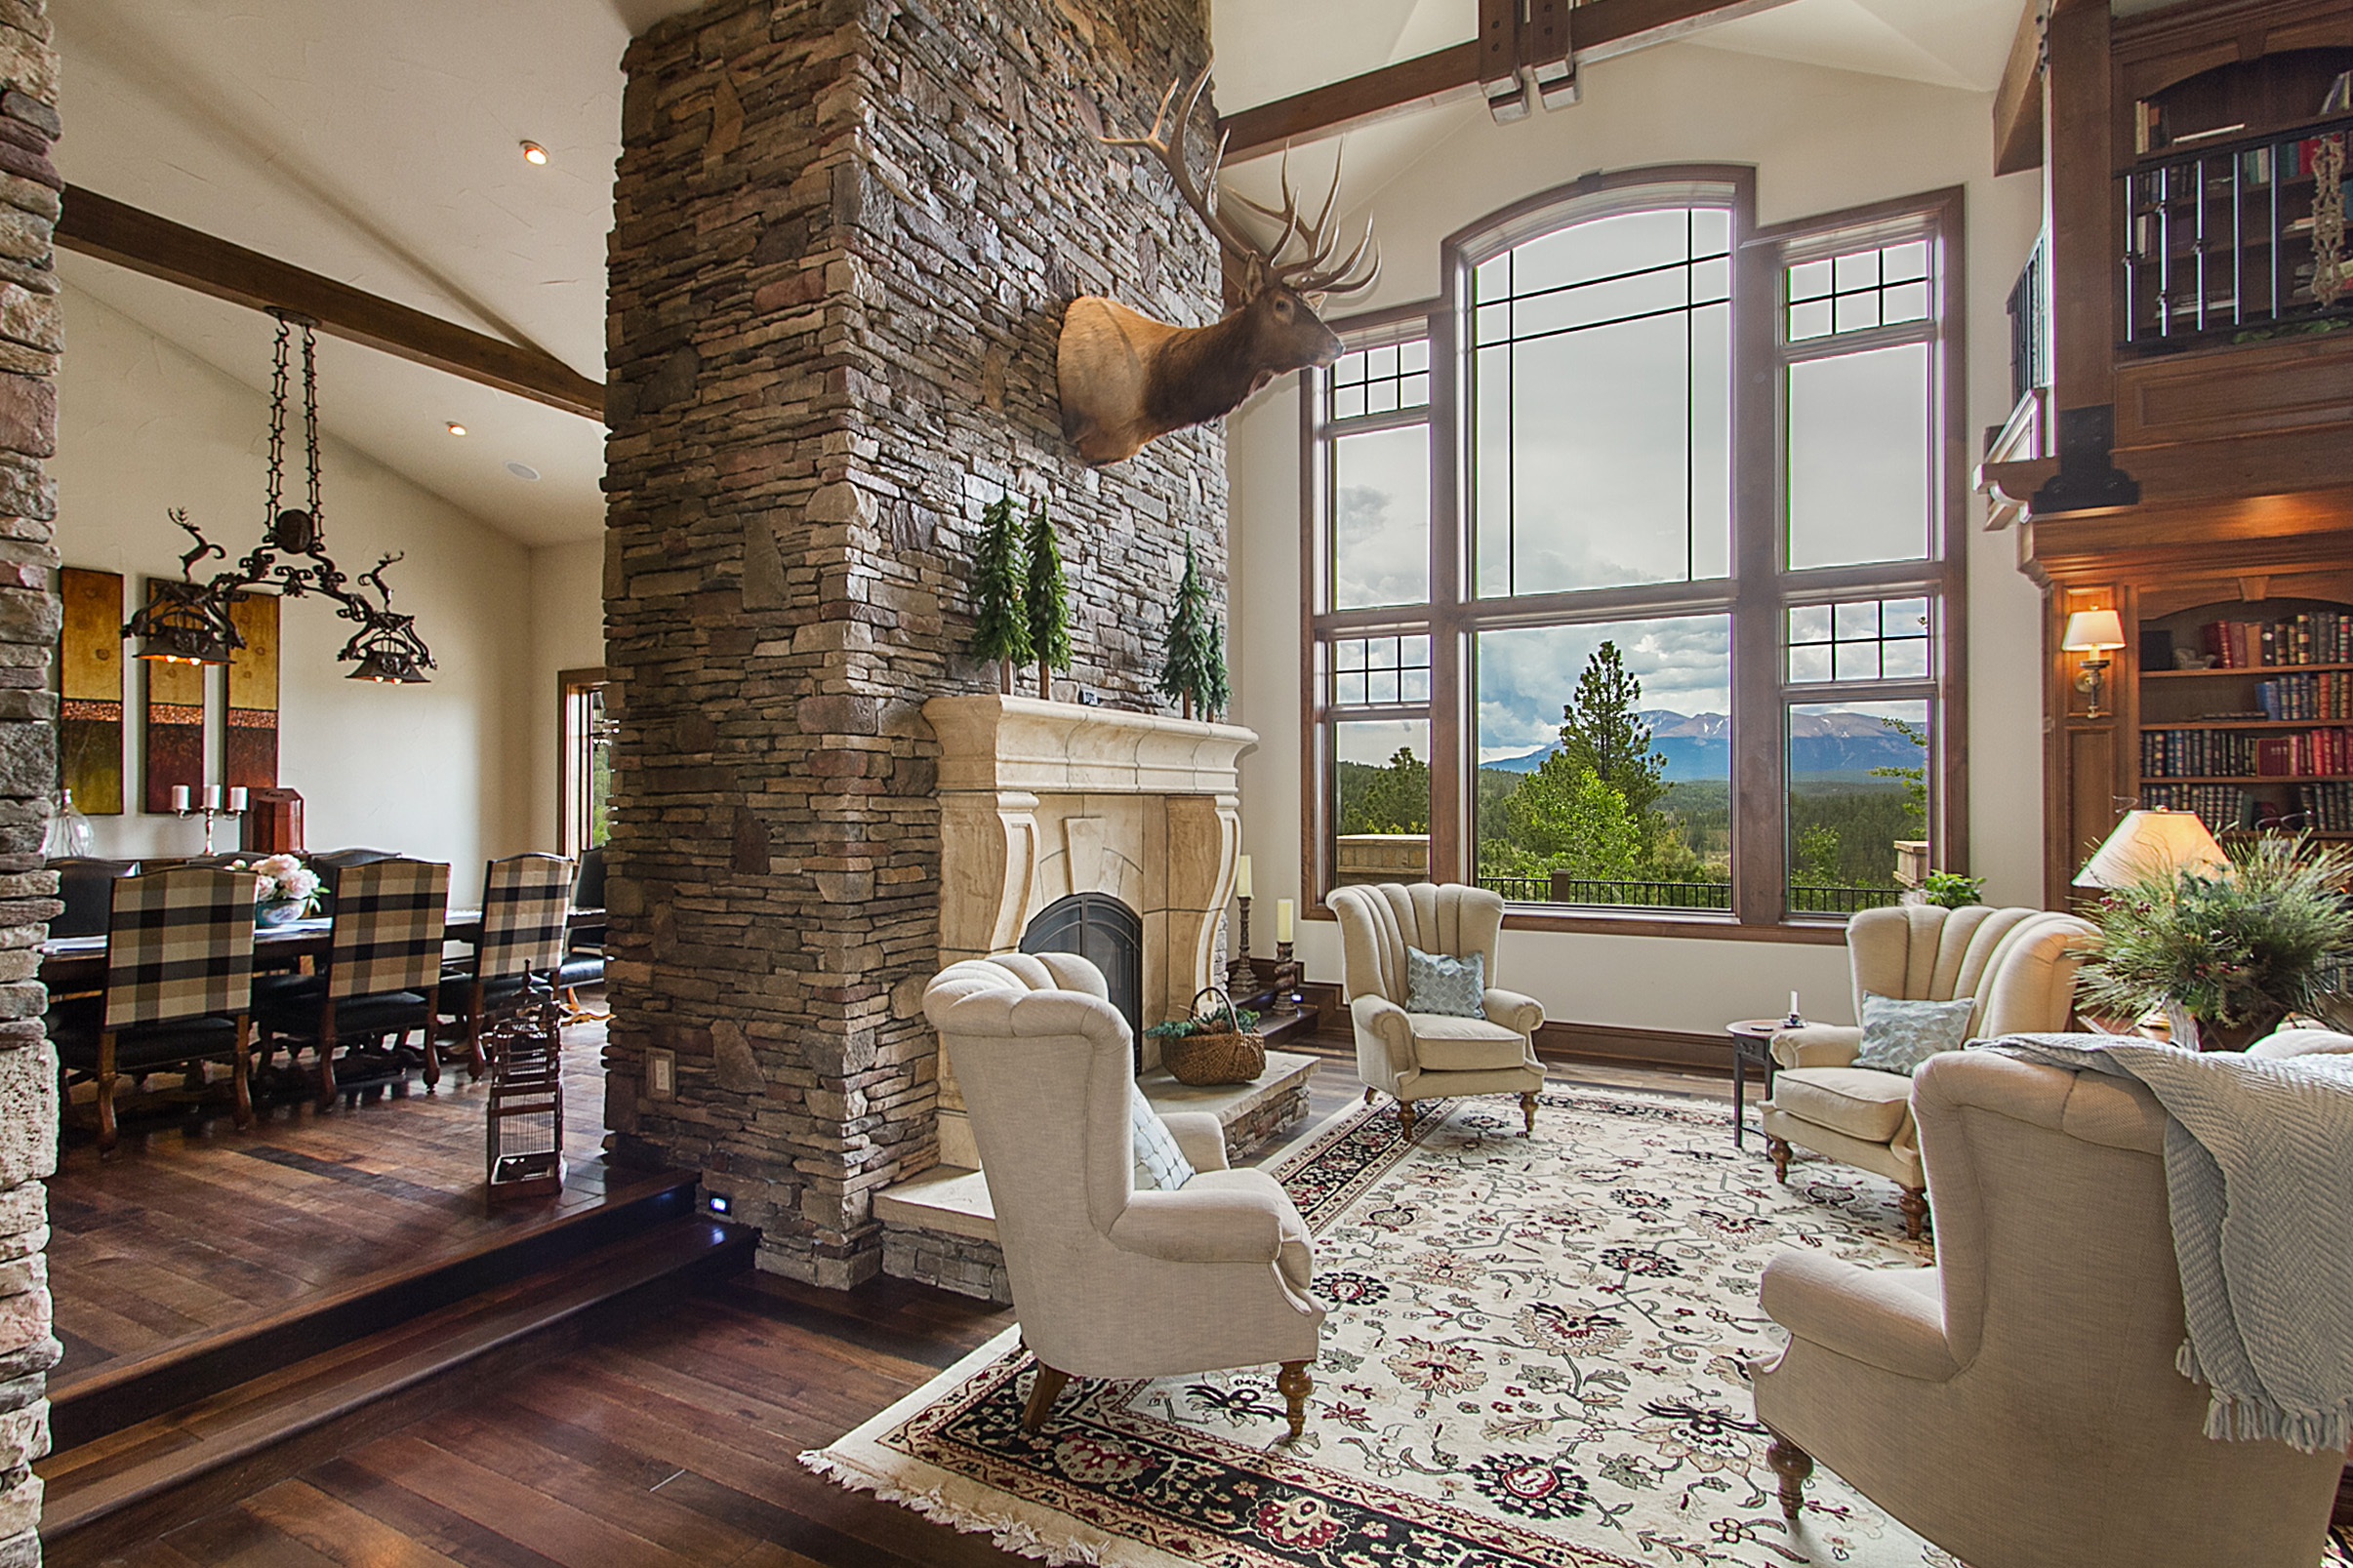 Property Of Divide Home Features Unforgettable Views of Pikes Peak